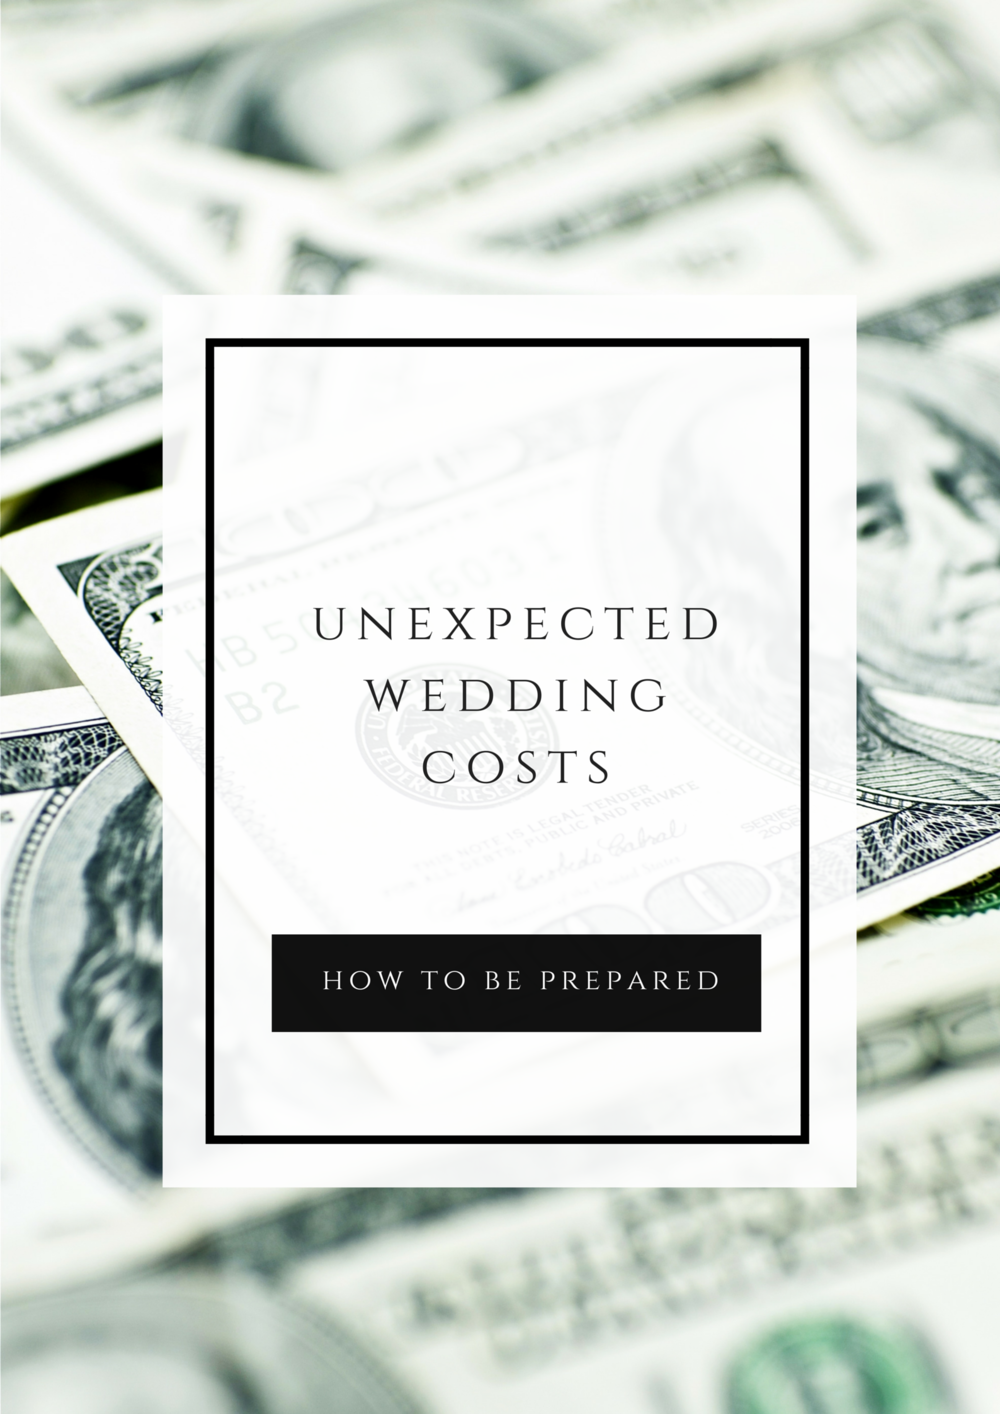 Unexpected Wedding Costs - How to be prepared